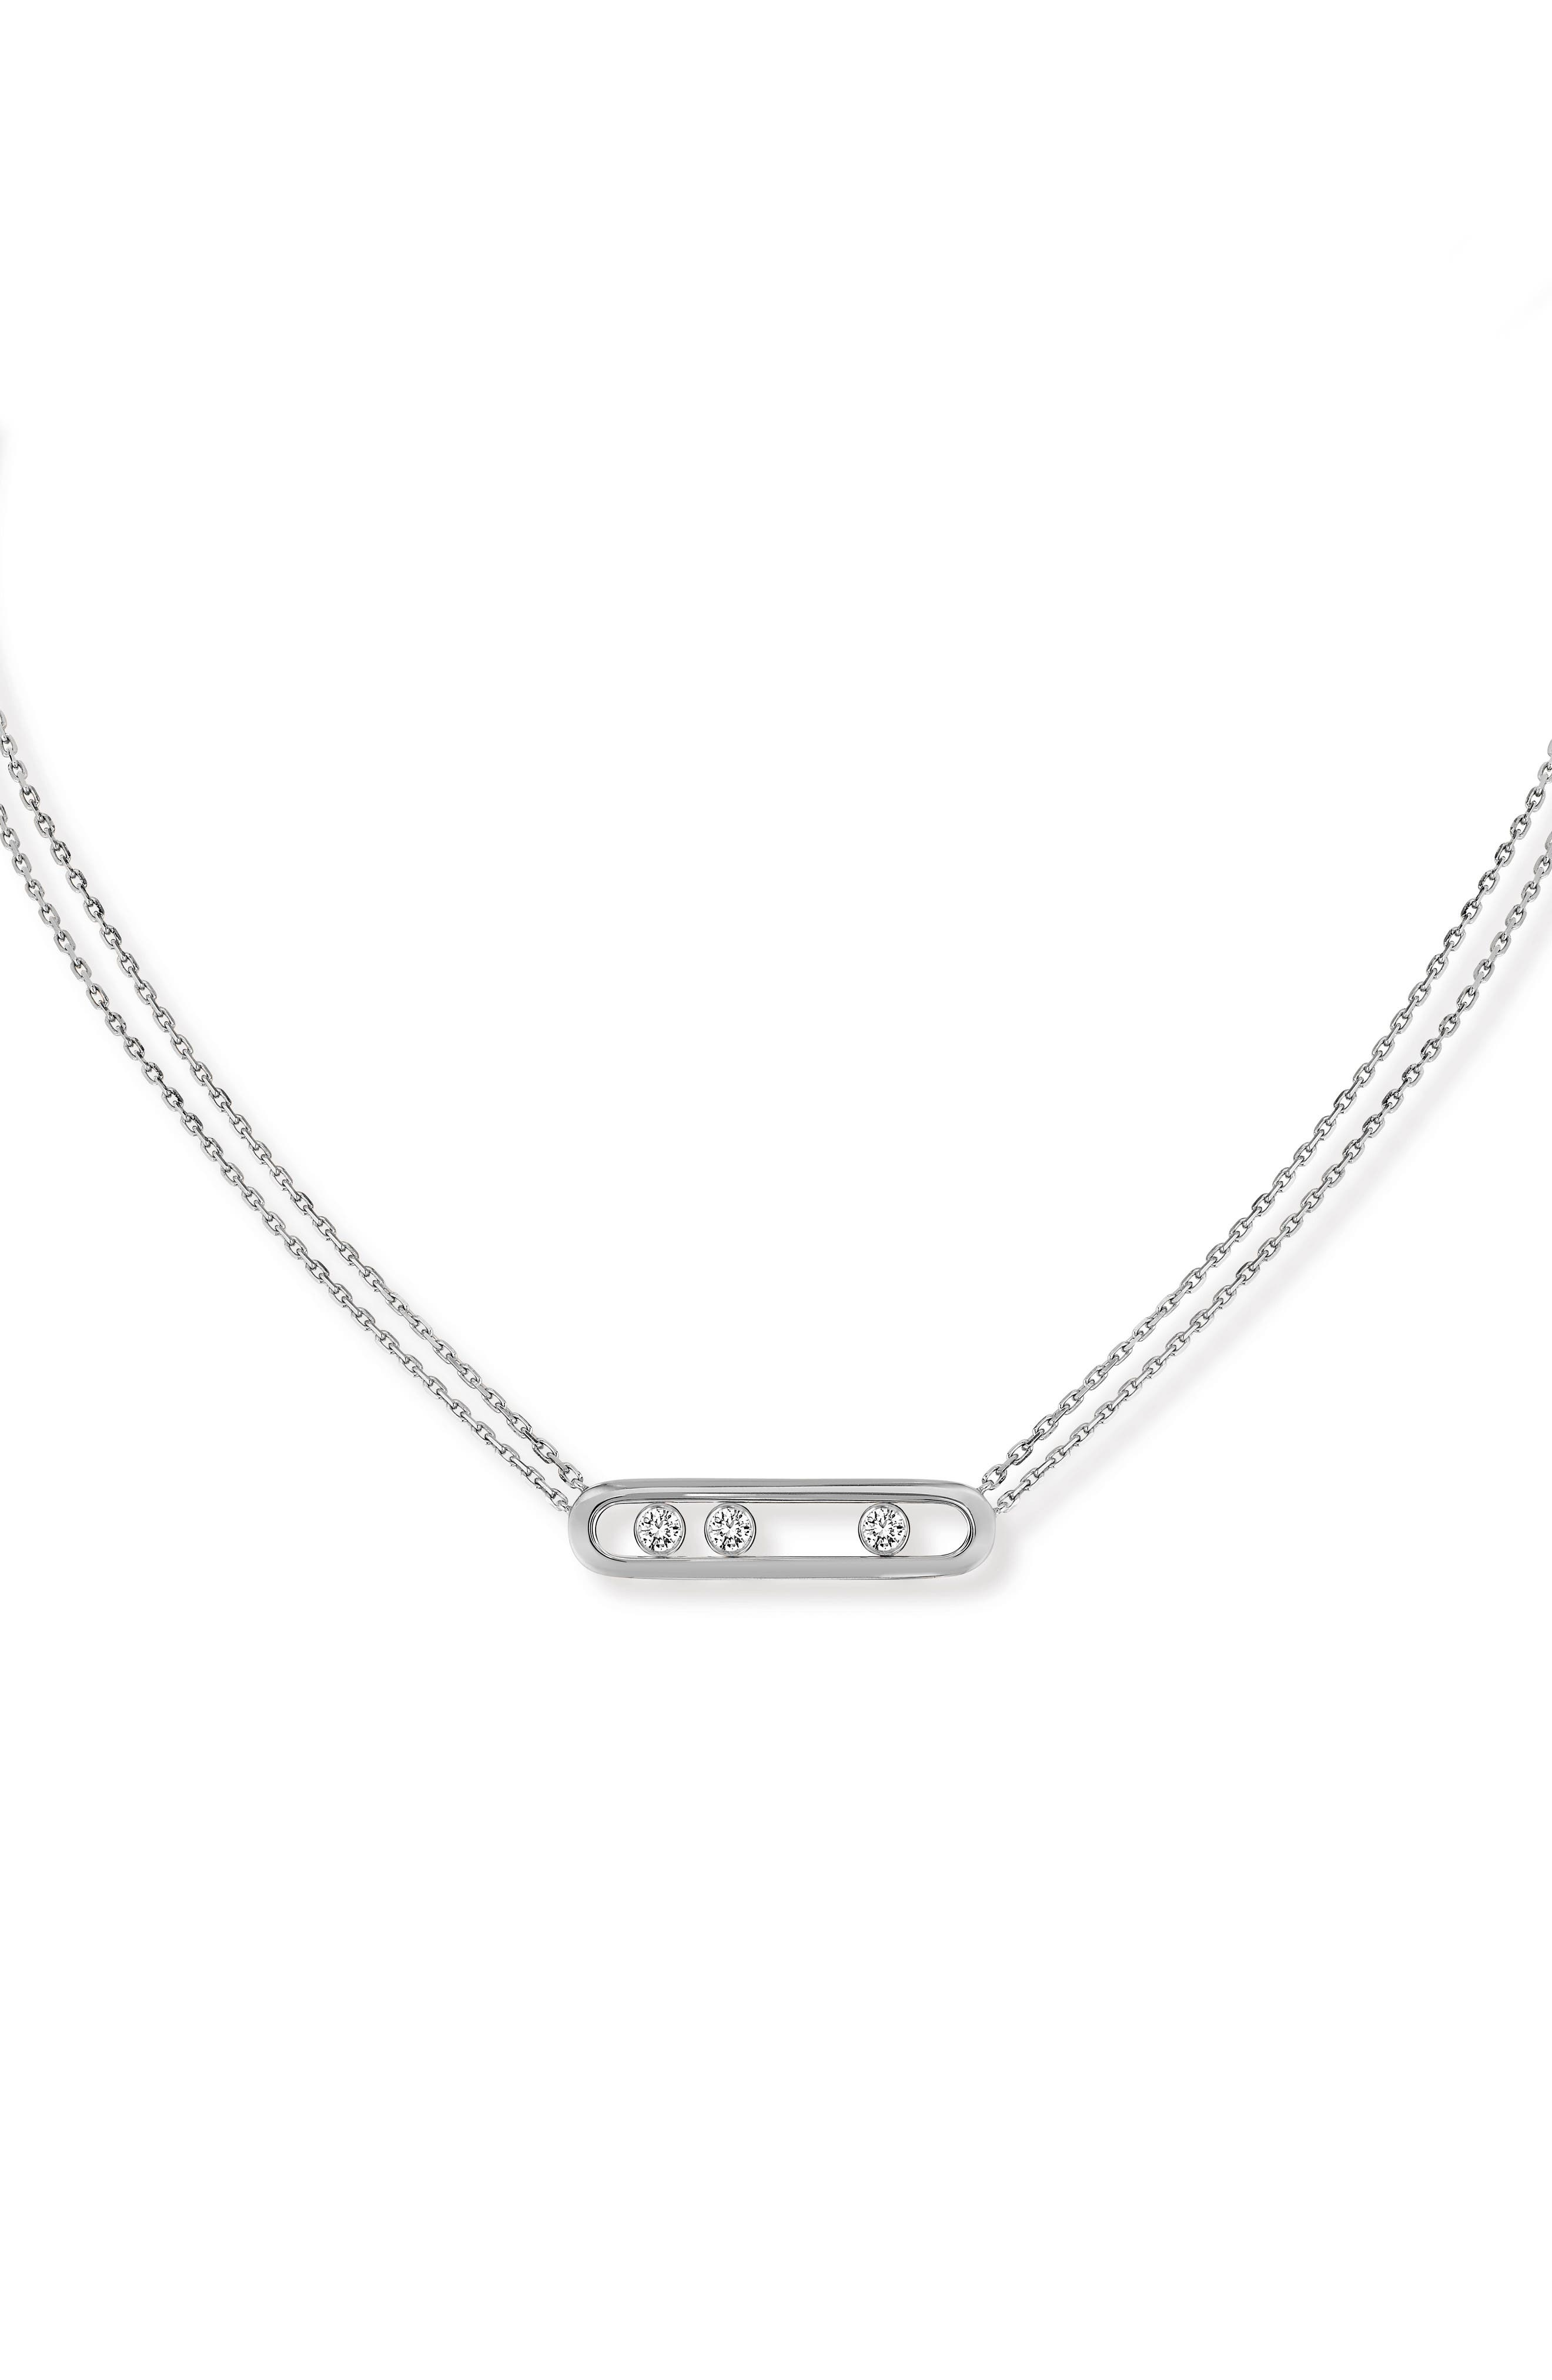 Two Strand Move Diamond Necklace,                             Main thumbnail 1, color,                             White Gold